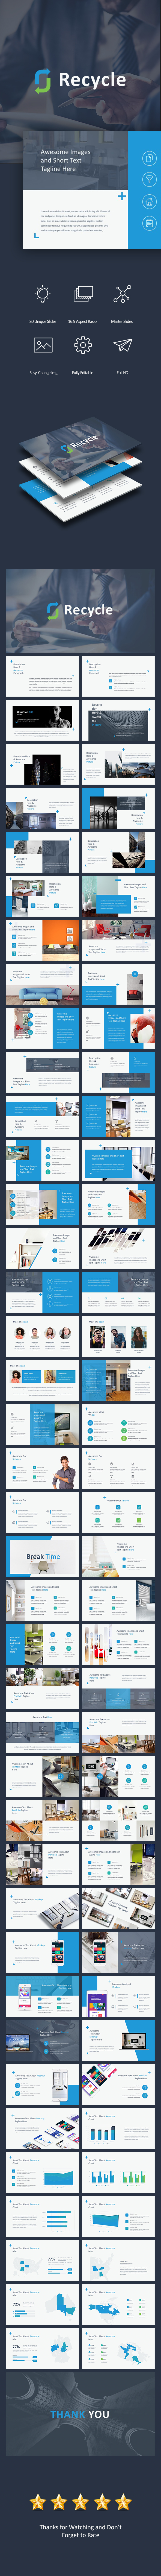 GraphicRiver Recycle Pitch Deck Powerpoint 20956139